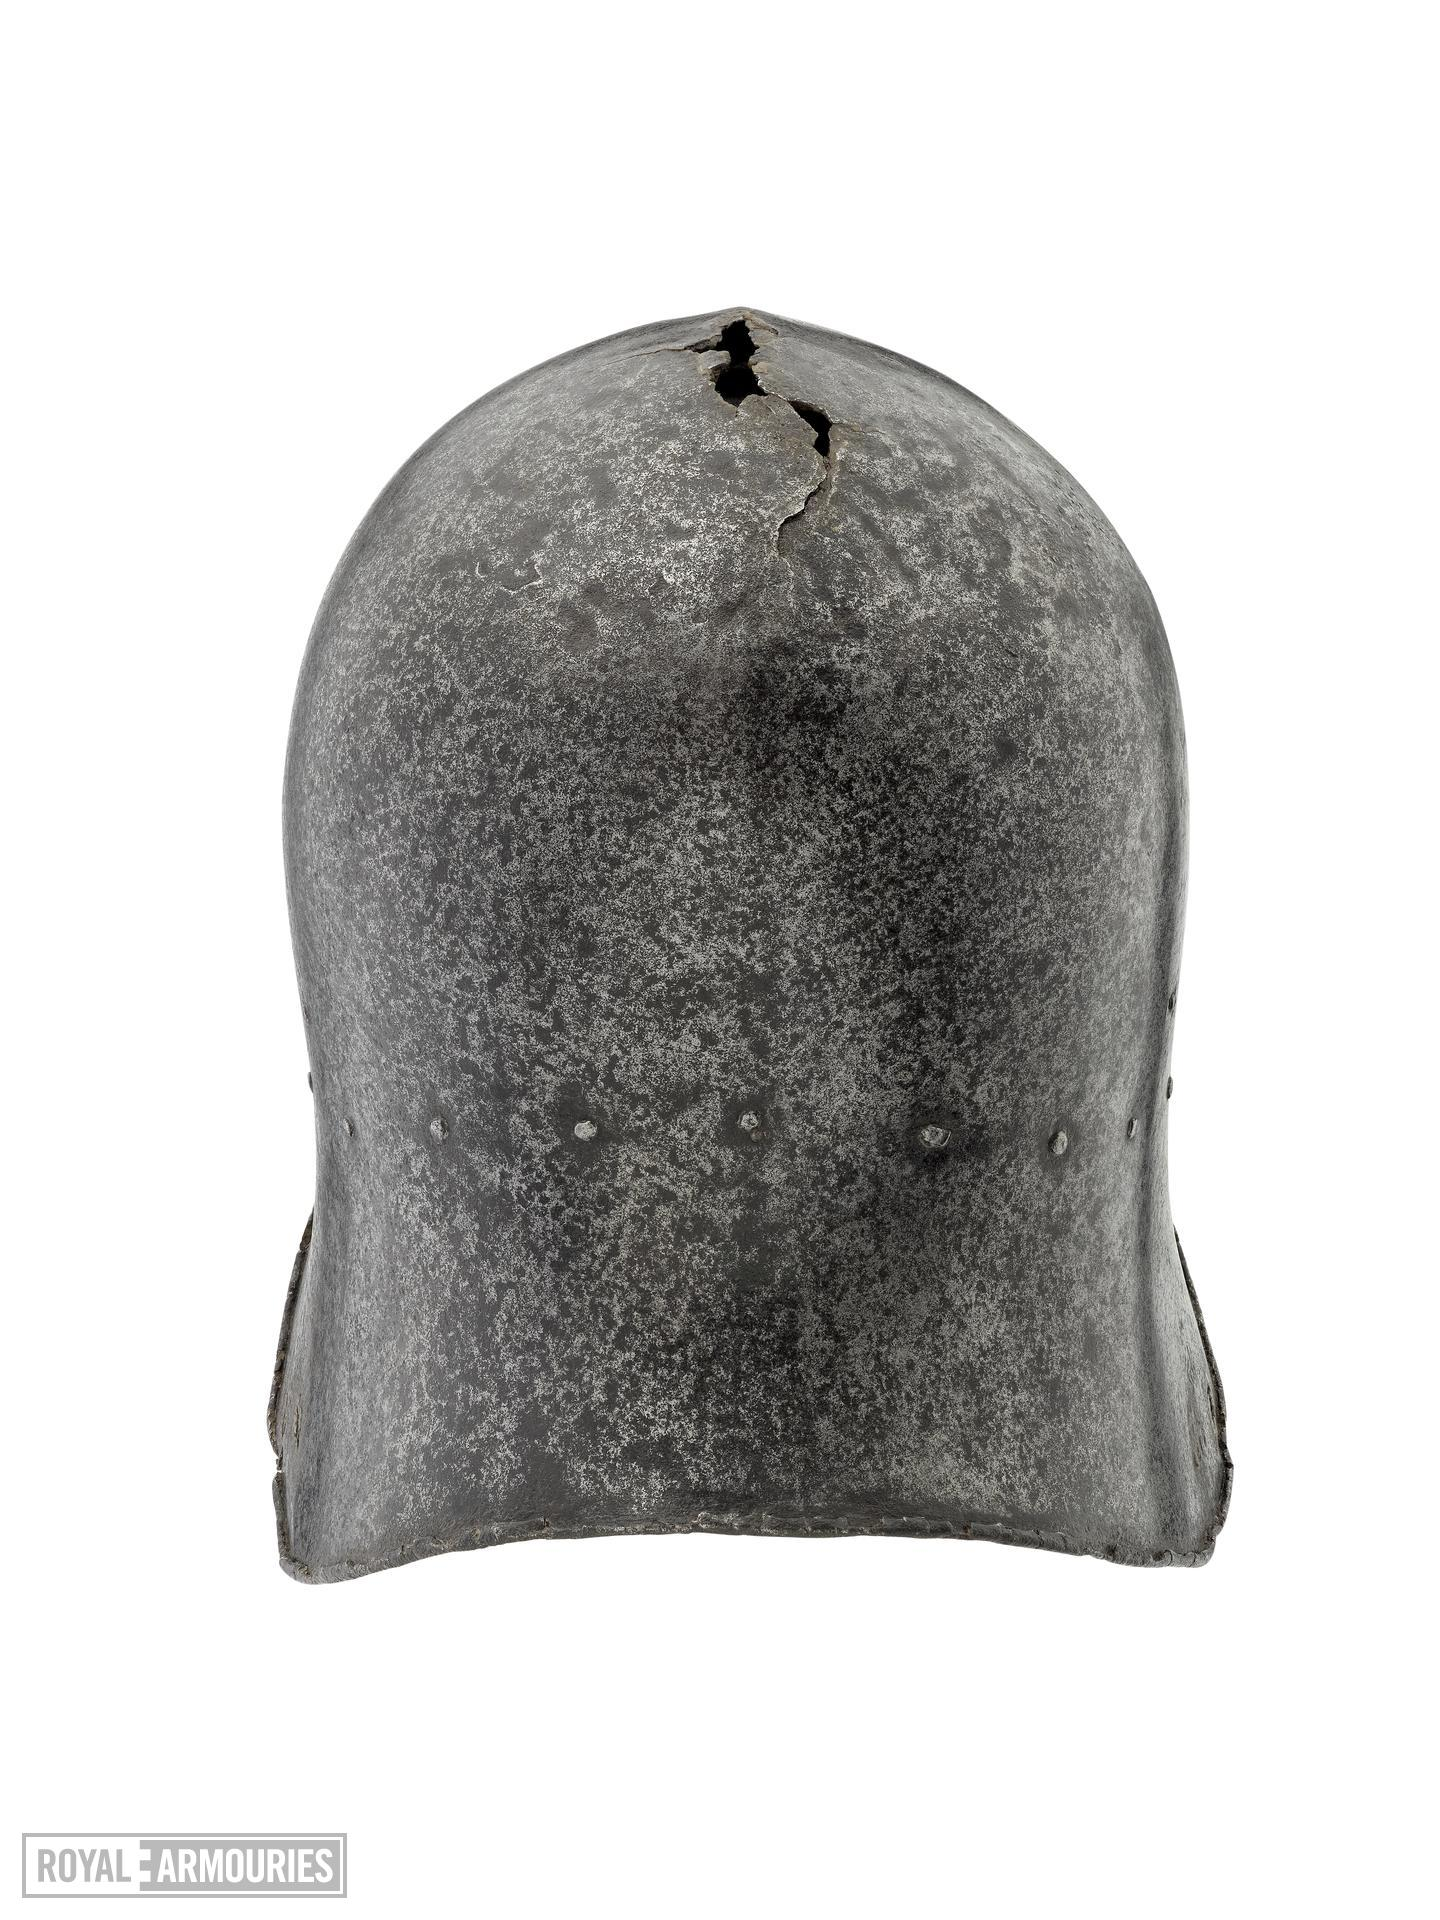 Sallet or kettle hat, probably produced for export to Western Europe. Italian, possibly Milan, about 1450 (IV.4)